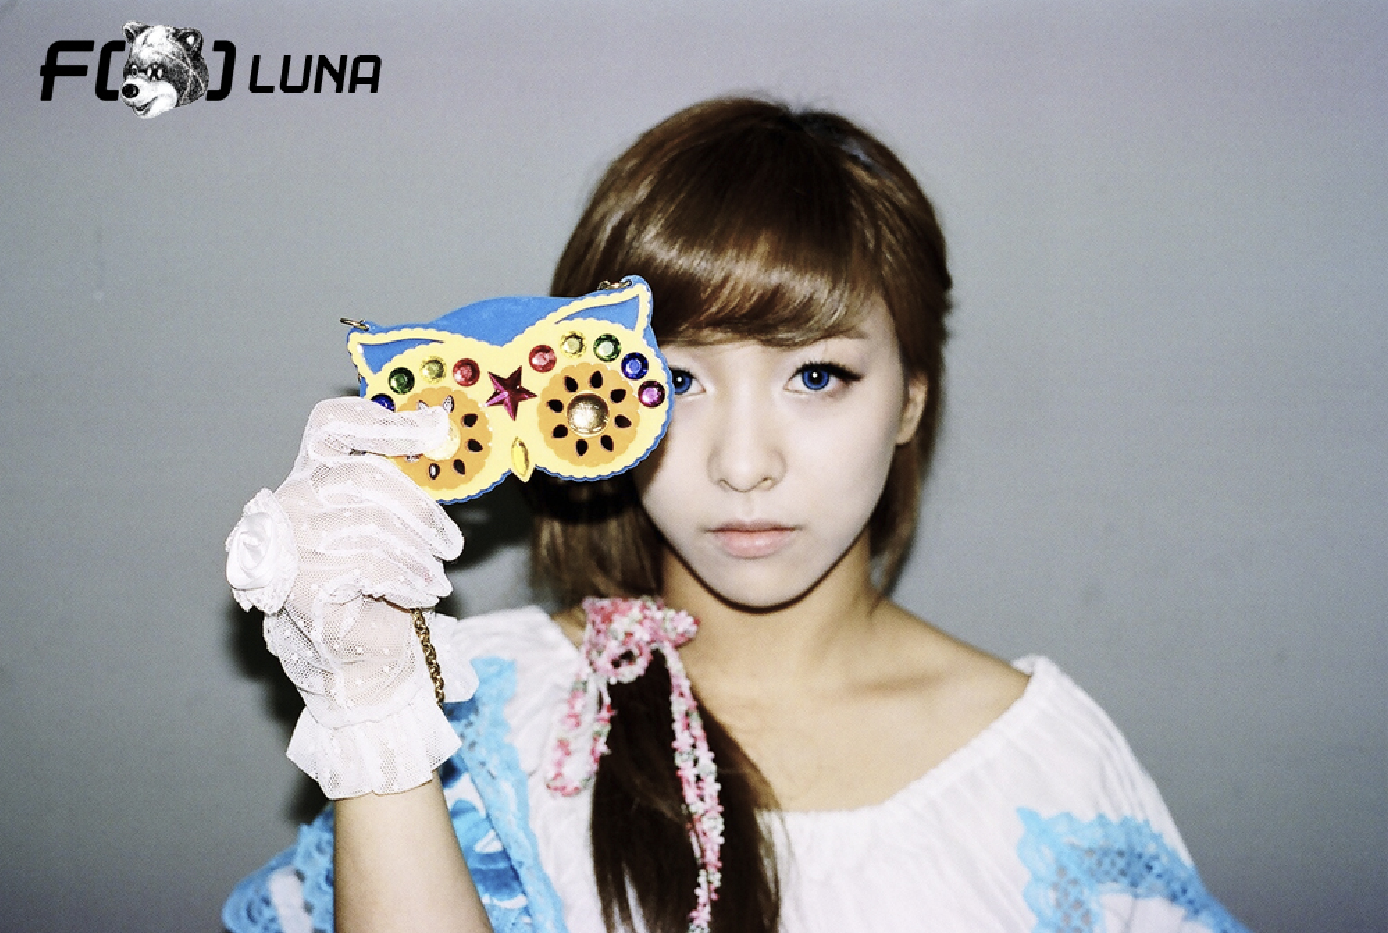 .:KPOP HOTLINE:.: F(x) Concept Photos for Electric Shock Album F(x) Luna Electric Shock